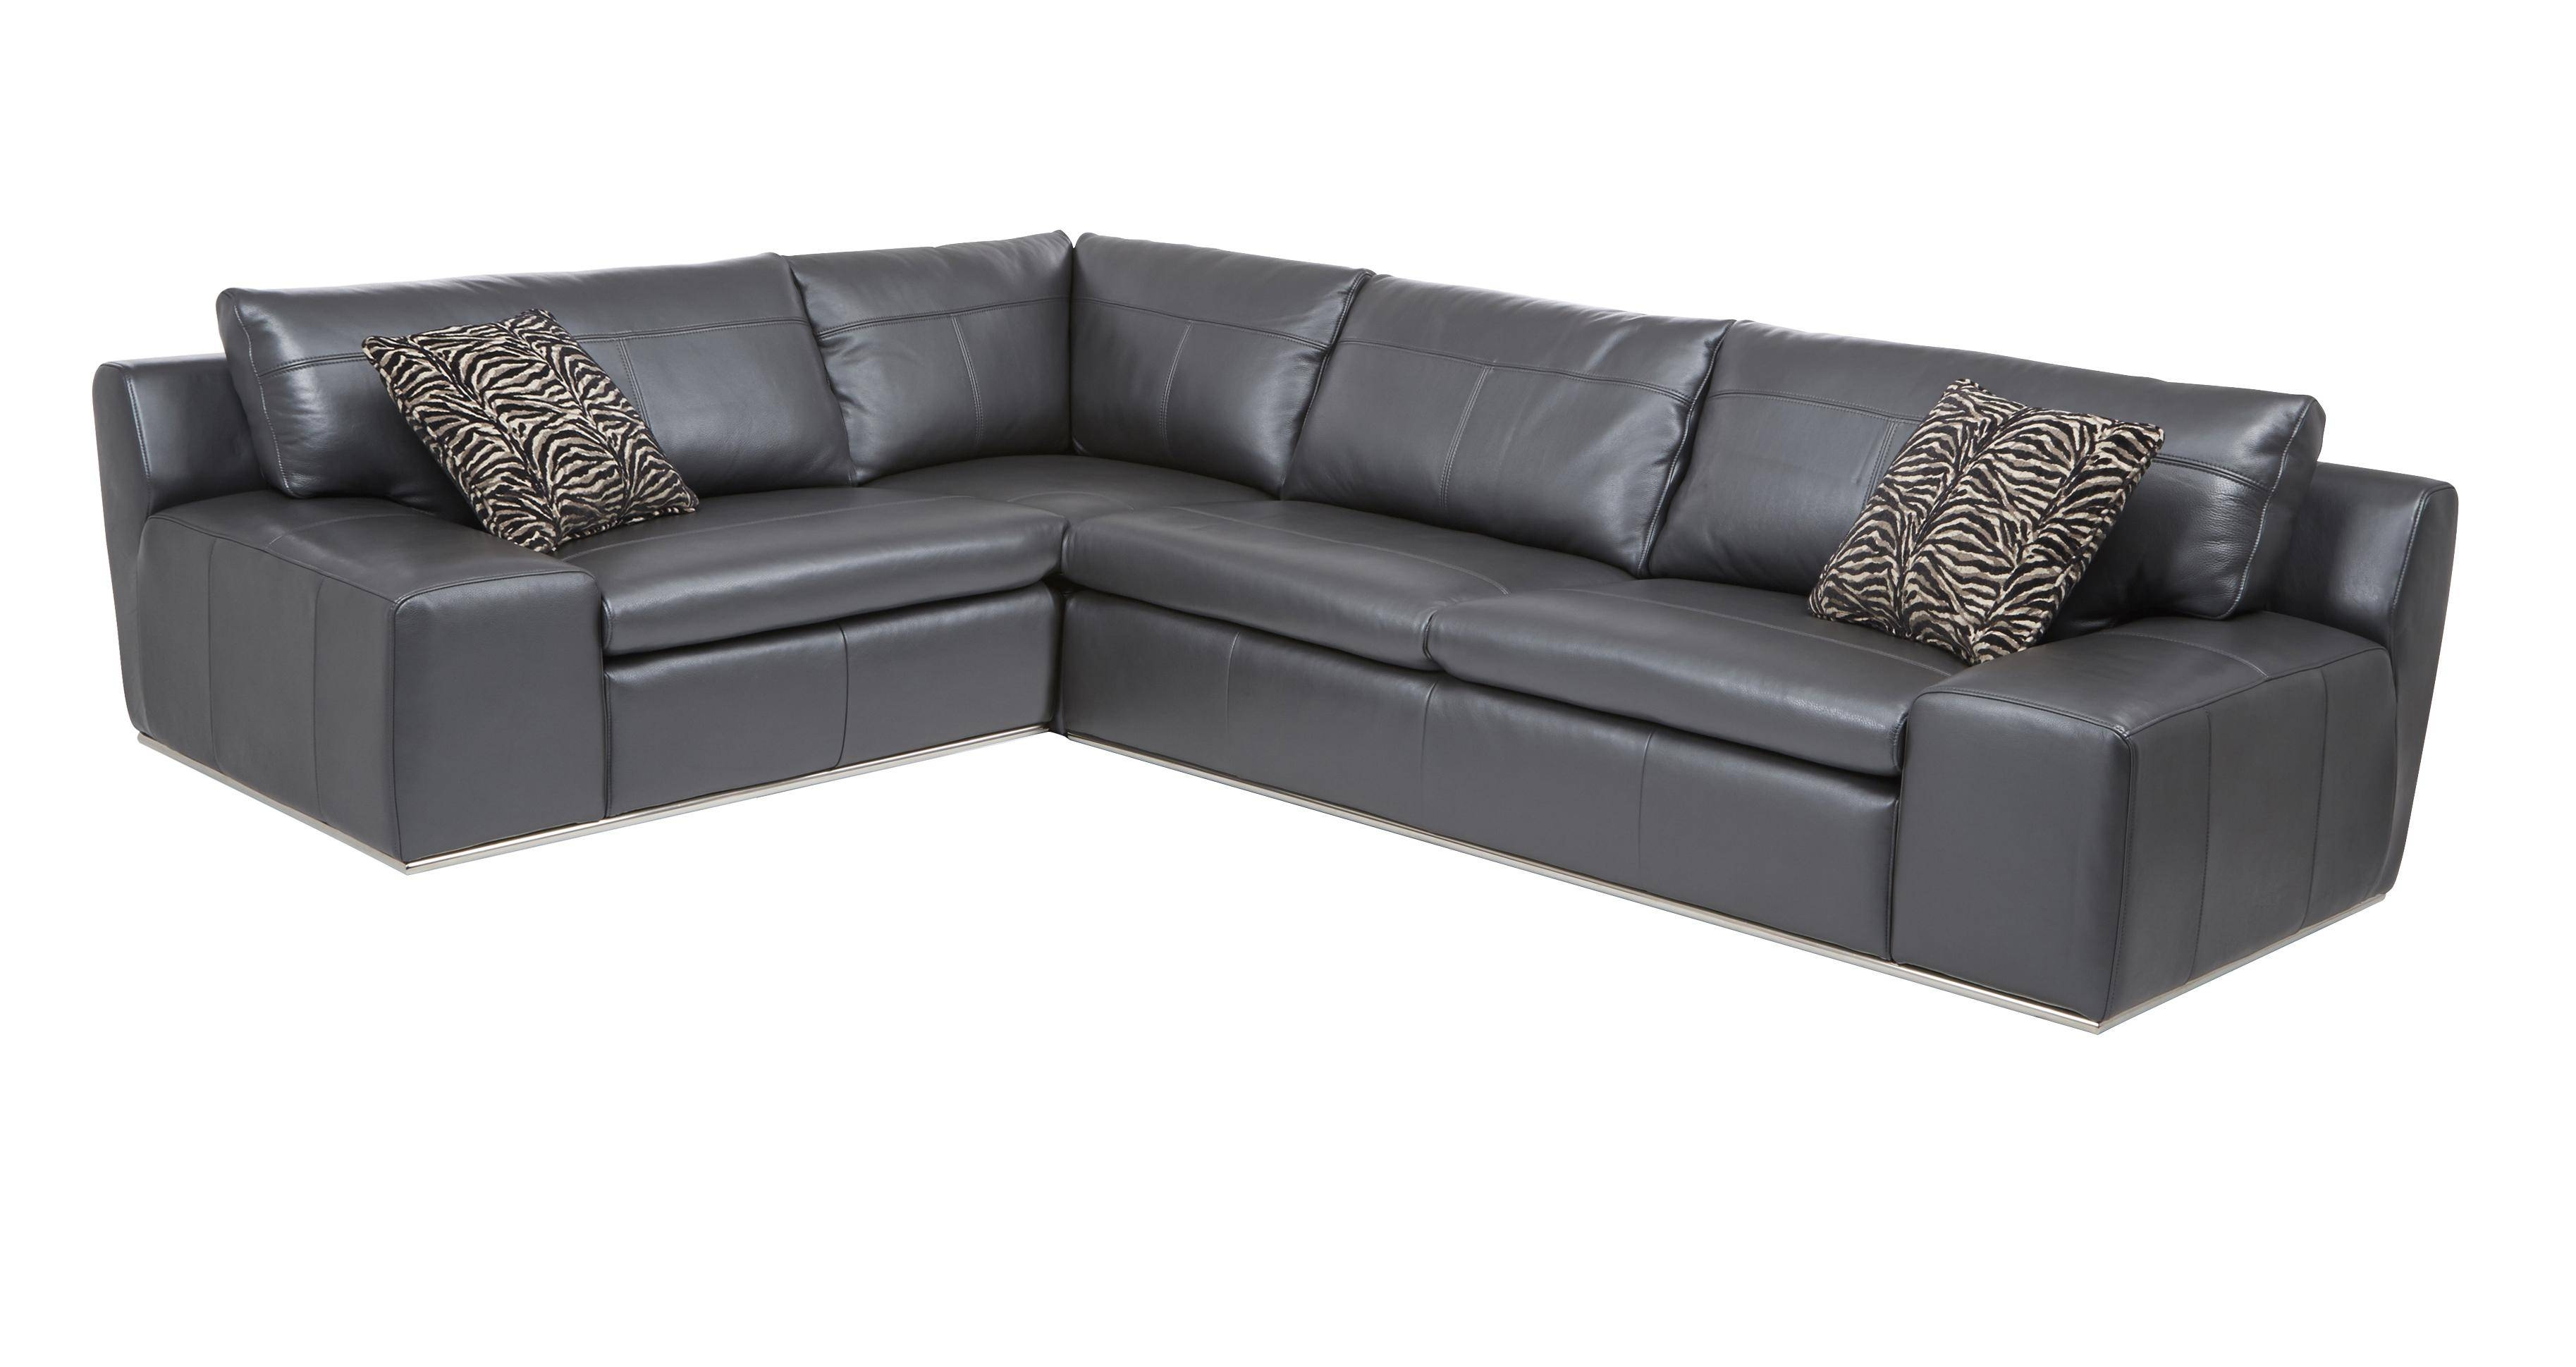 Sofas Center : Leather Corner Sofas Uk Sale Clearance Sofa Brown within Leather Corner Sofas (Image 30 of 30)